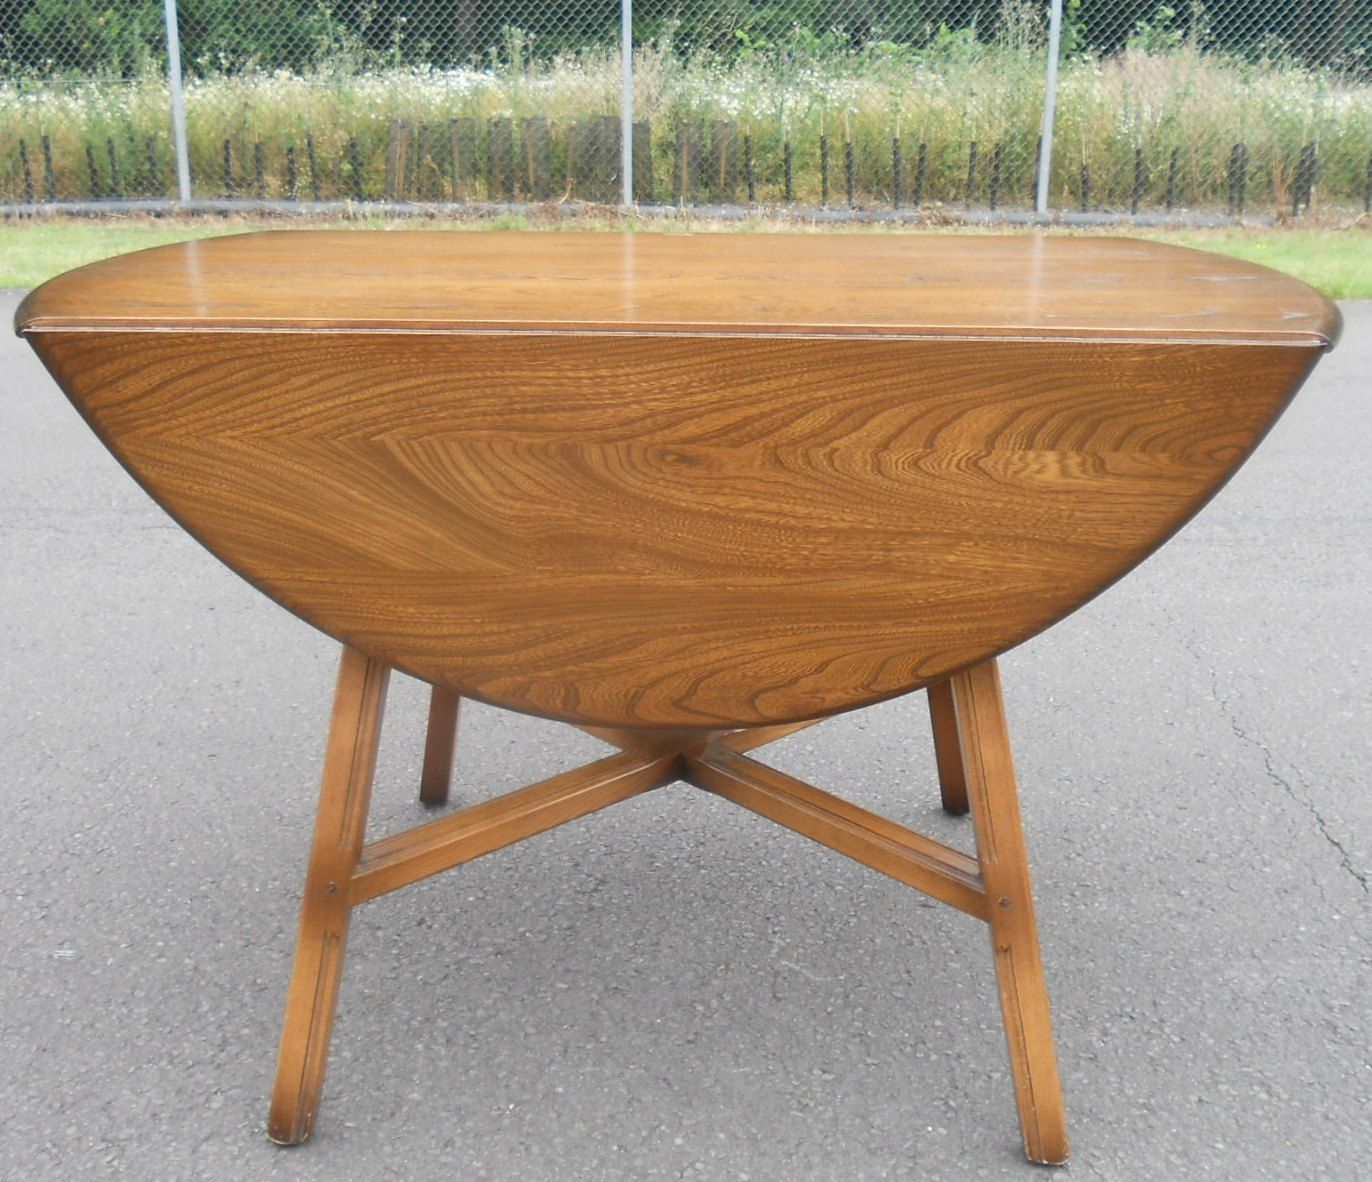 SOLD   Oval Dropleaf Elm Dining Table by Ercol. Oval Dropleaf Elm Dining Table by Ercol